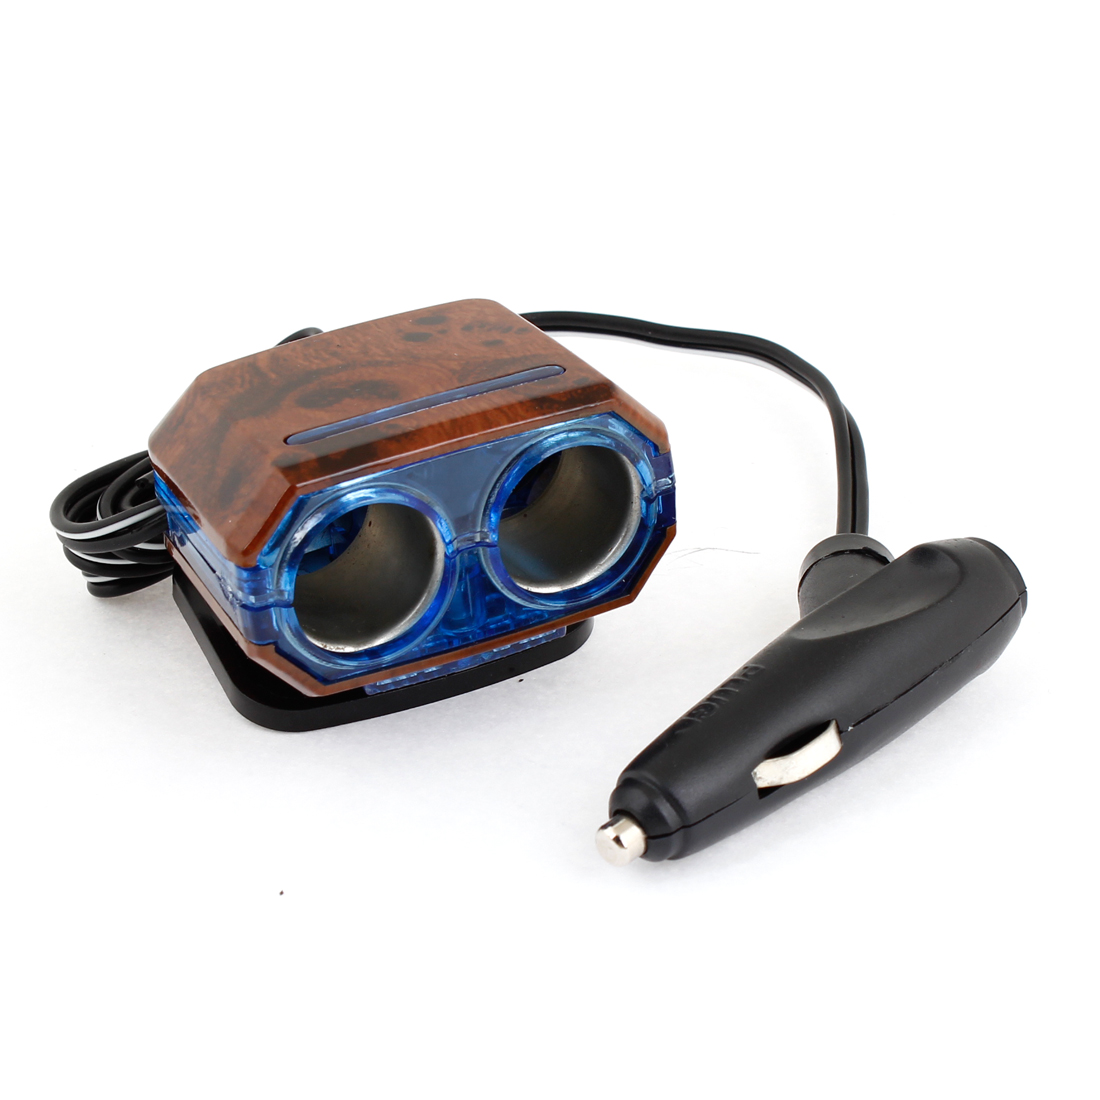 Auto Car Blue Wood Color 2 Way Socket Cigar Lighter Charger Adapter